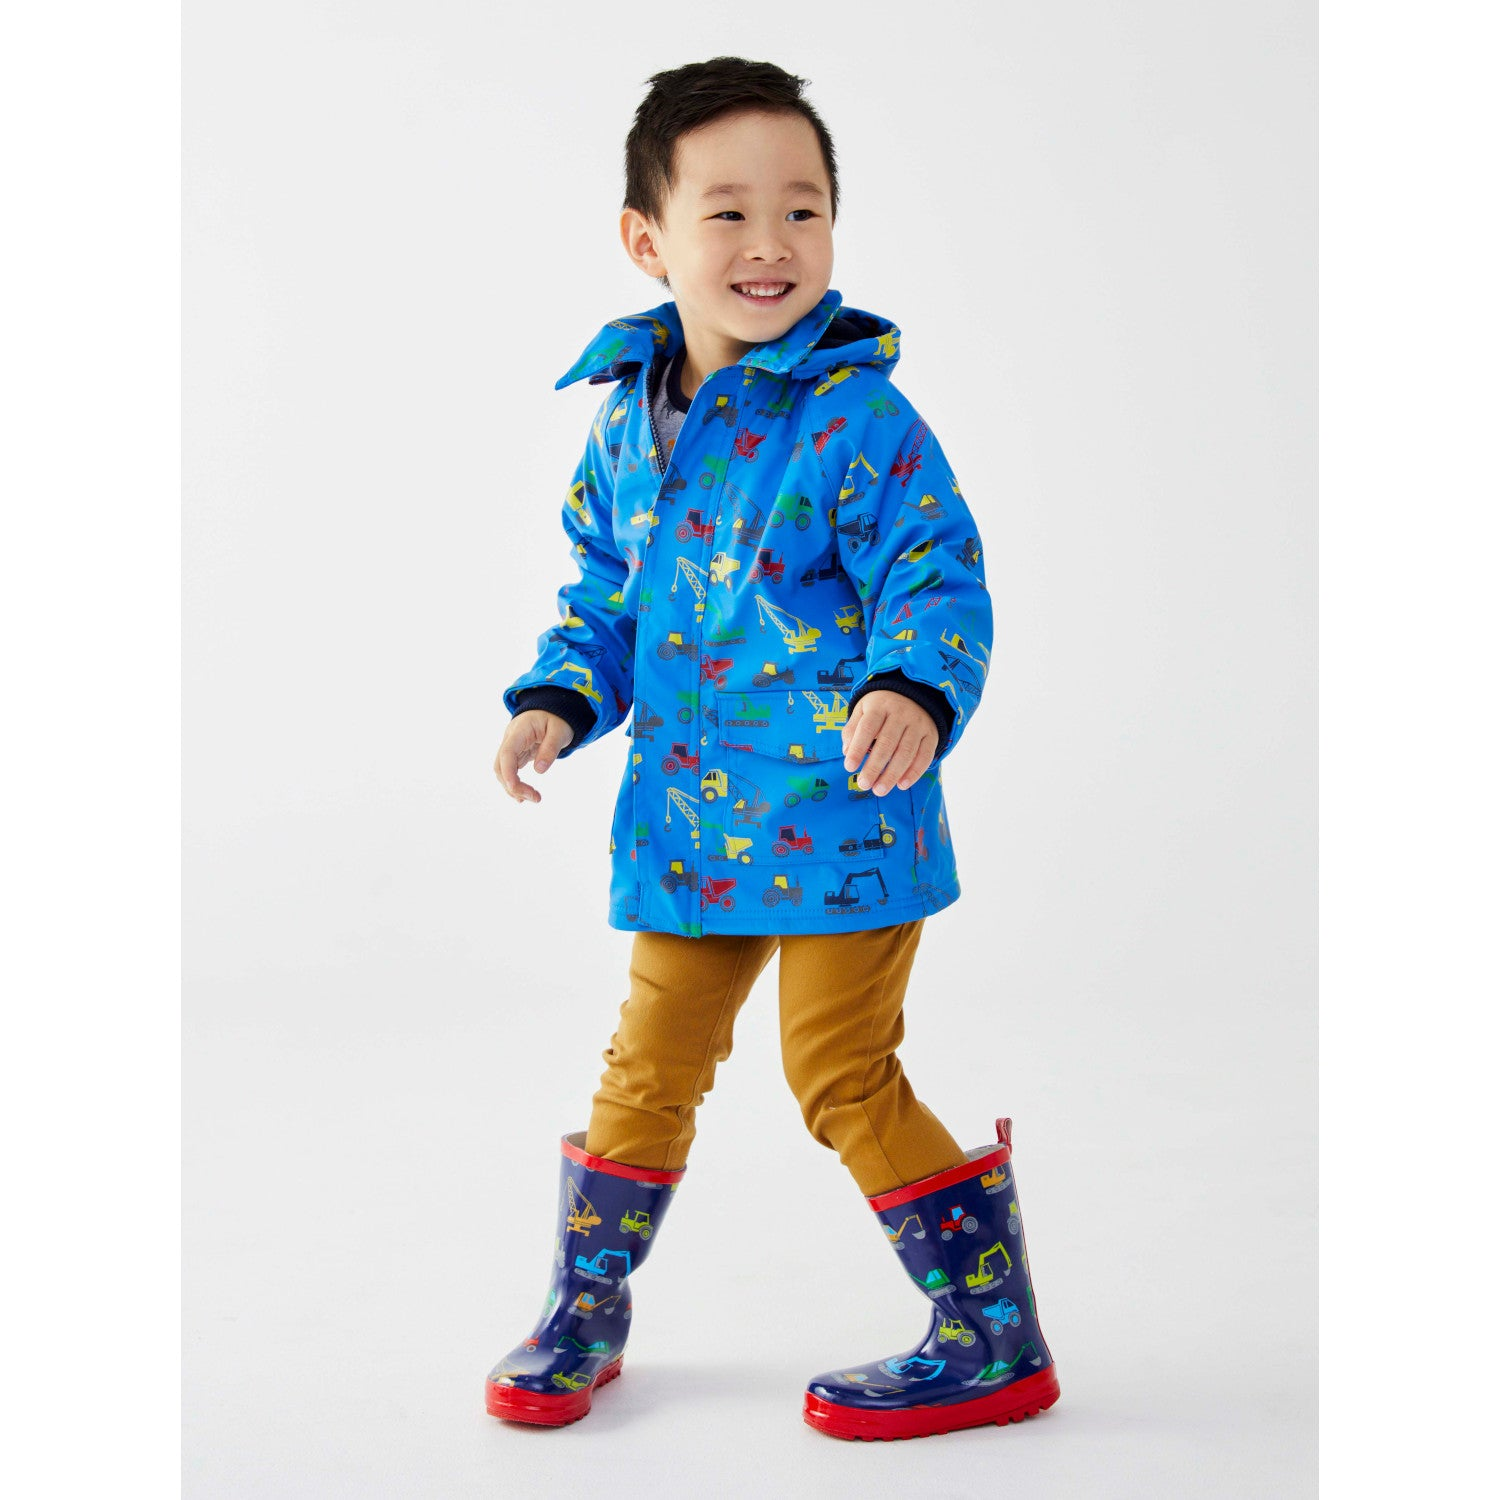 Korango Raincoat Excavator Blue Last One! Size 8 year